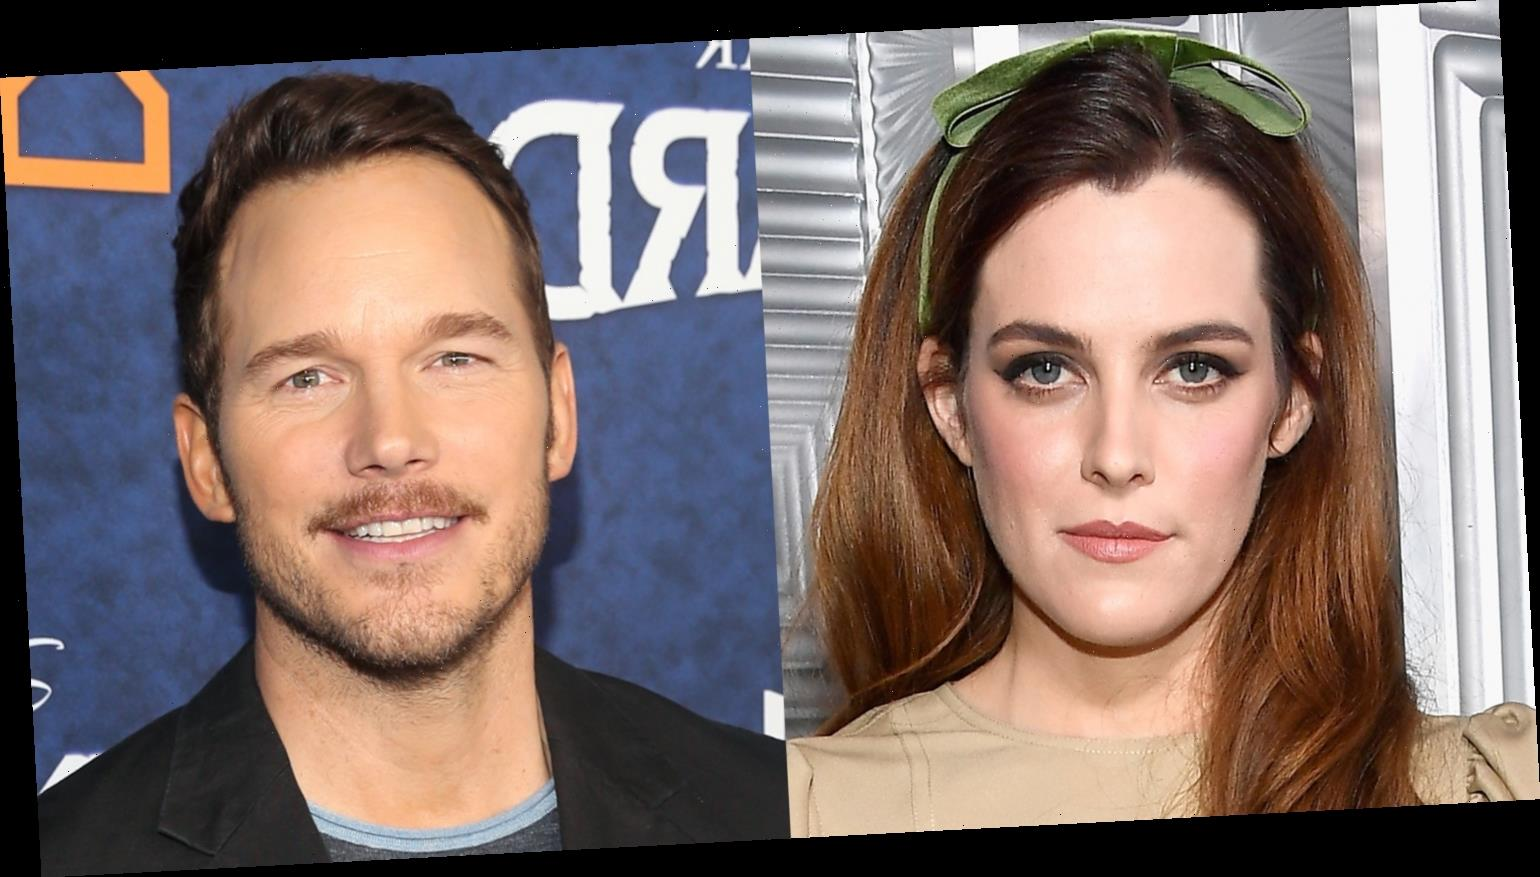 Riley Keough Joins Chris Pratt in Amazon Series 'The Terminal List'